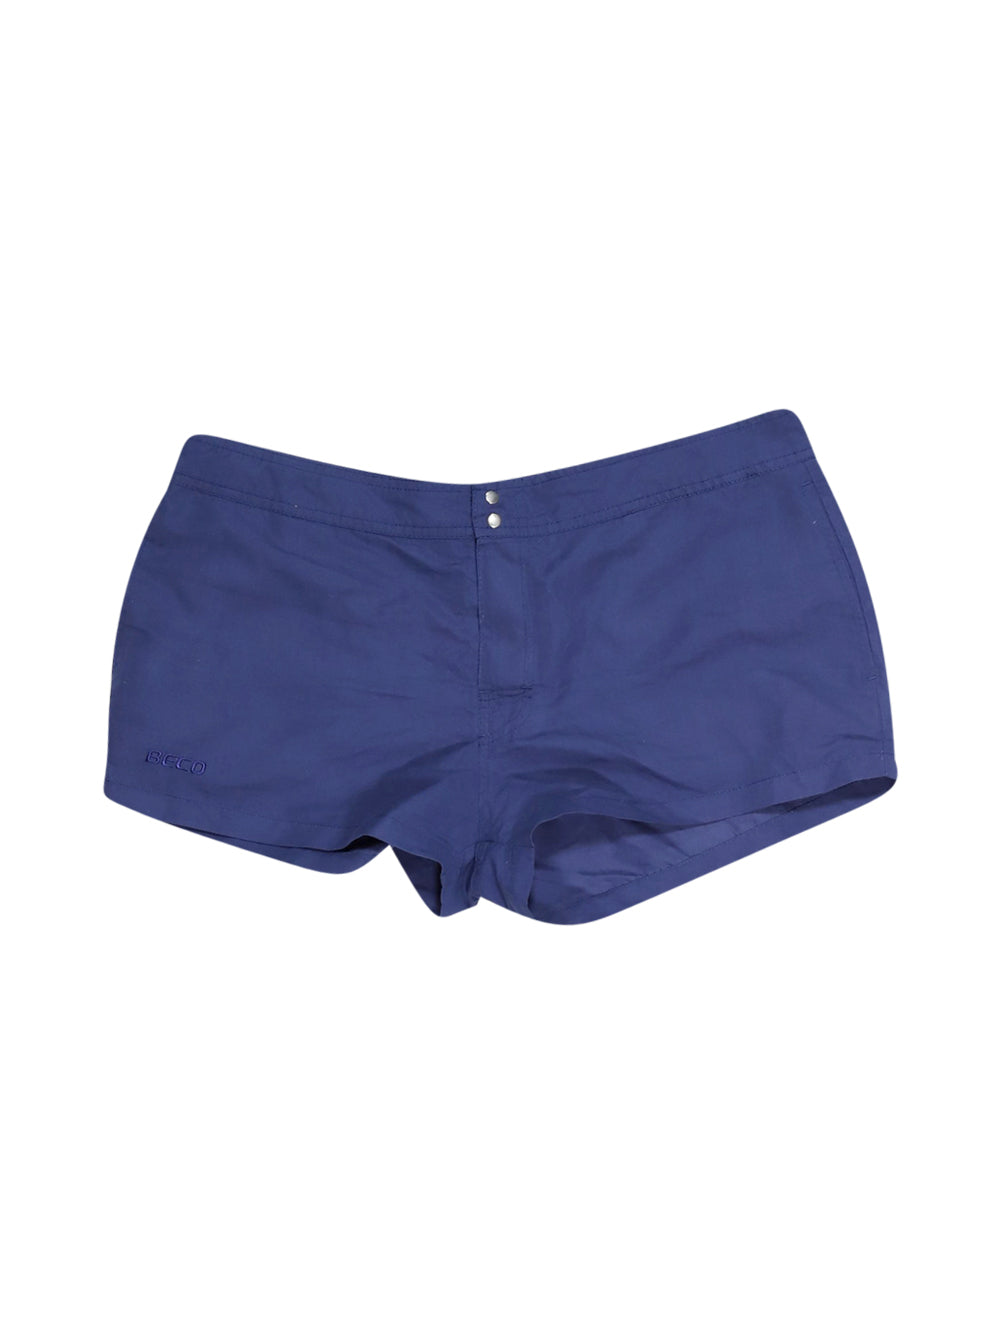 Front photo of Preloved beco Blue Woman's shorts - size 12/L